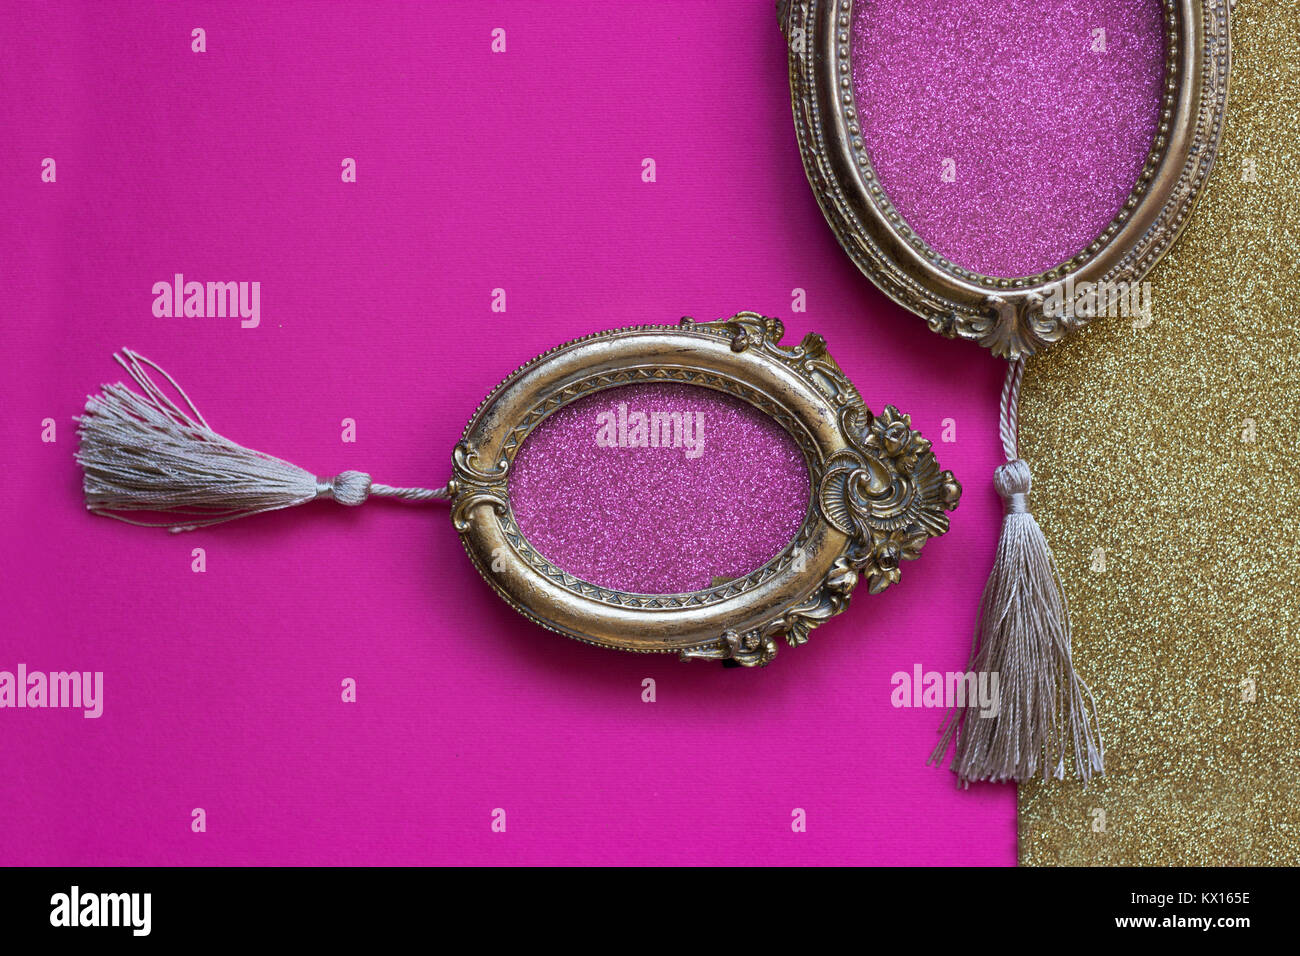 Due Vintage Ovale Golden Cornici In Rosa E Sfondo Dorato Con Copia